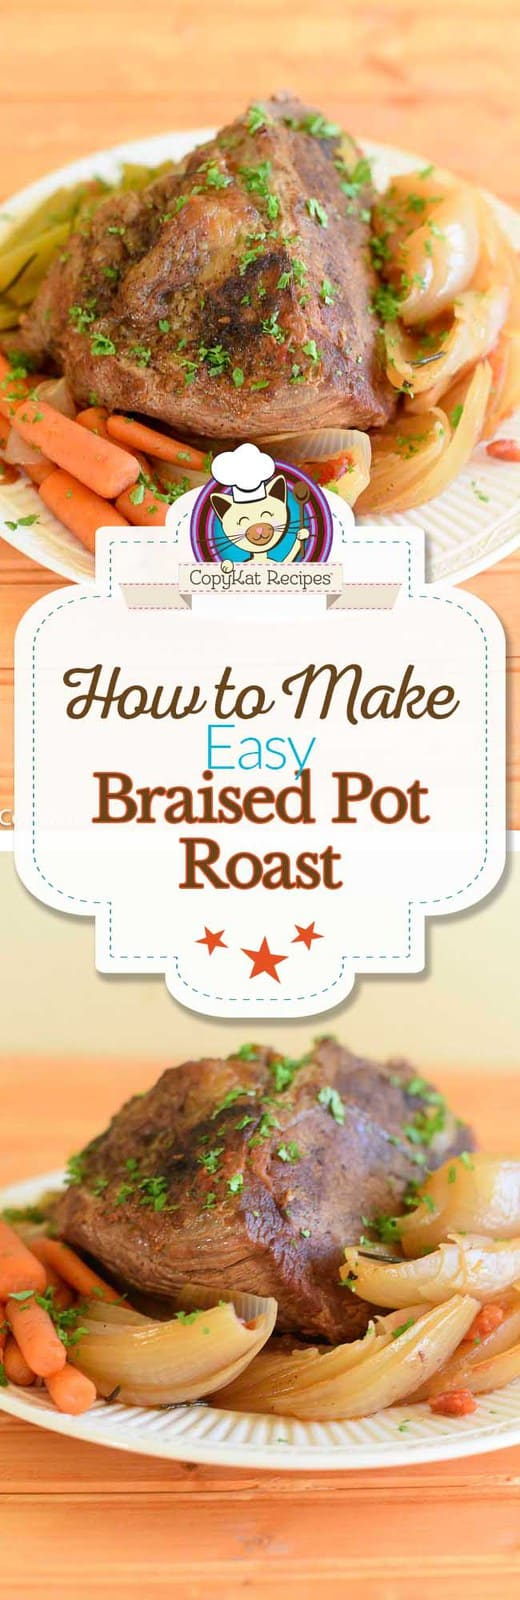 Even if you have never made a braised pot roast before, you can make a delicious pot roast with this easy recipe.